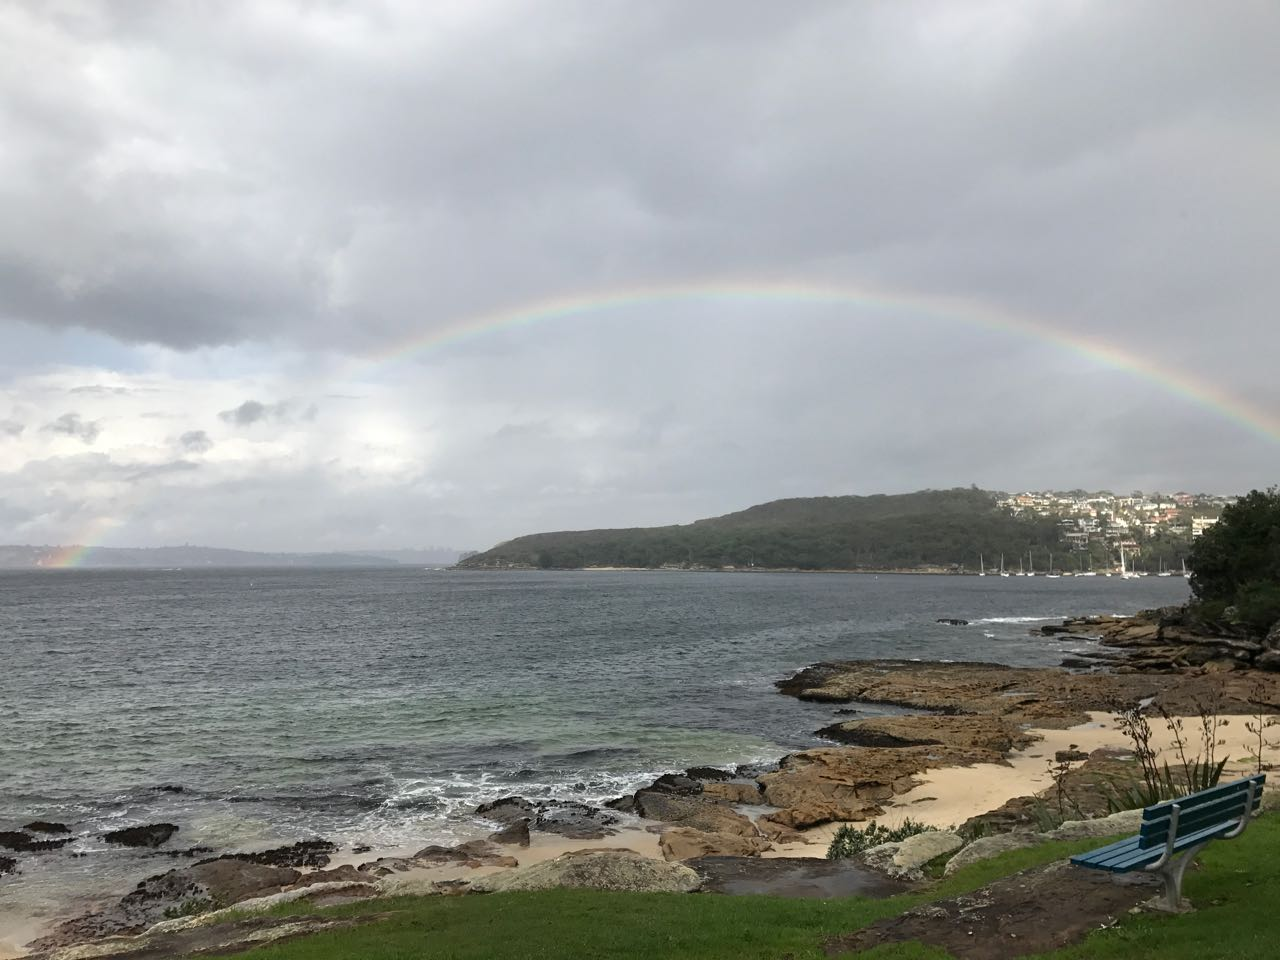 Rainbow over Manly